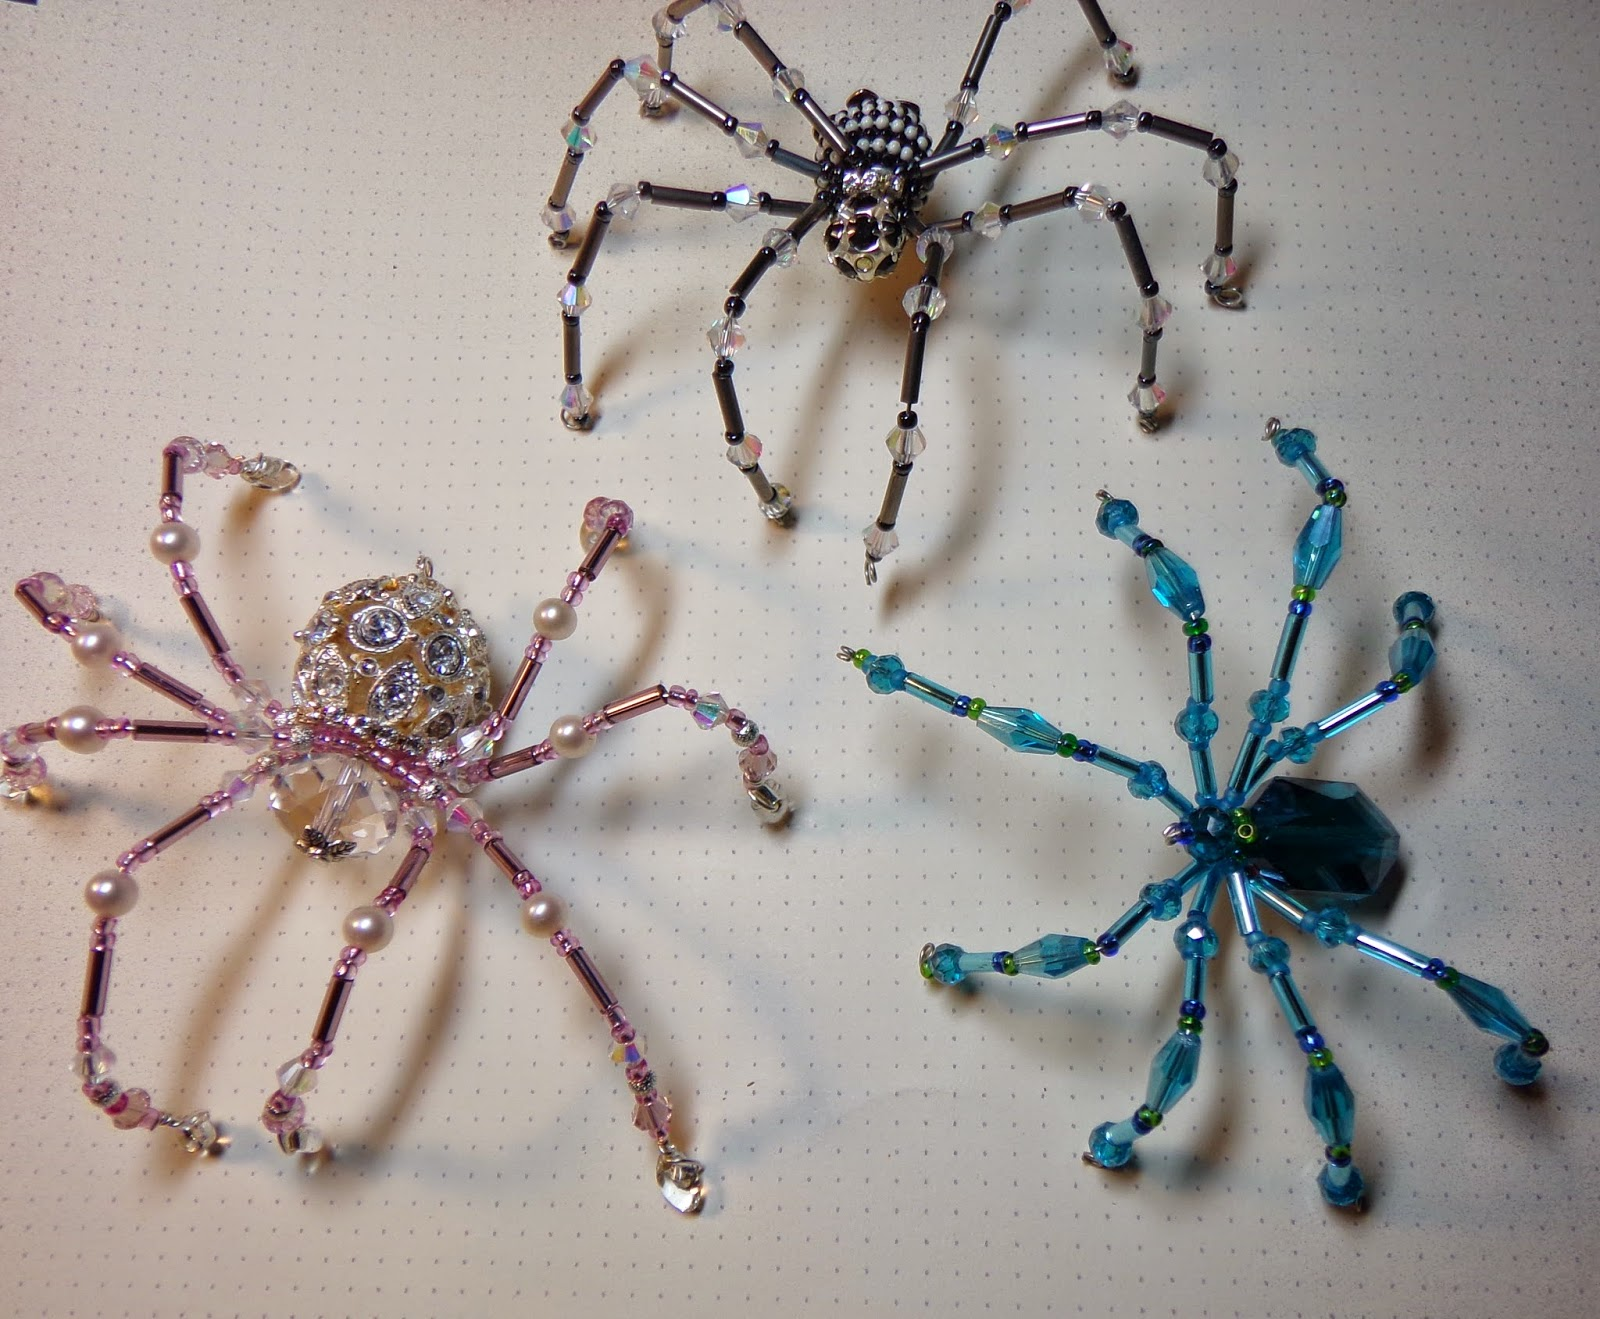 JuJu Crafts: Spiders made from Beads and Wire - in time for Halloween